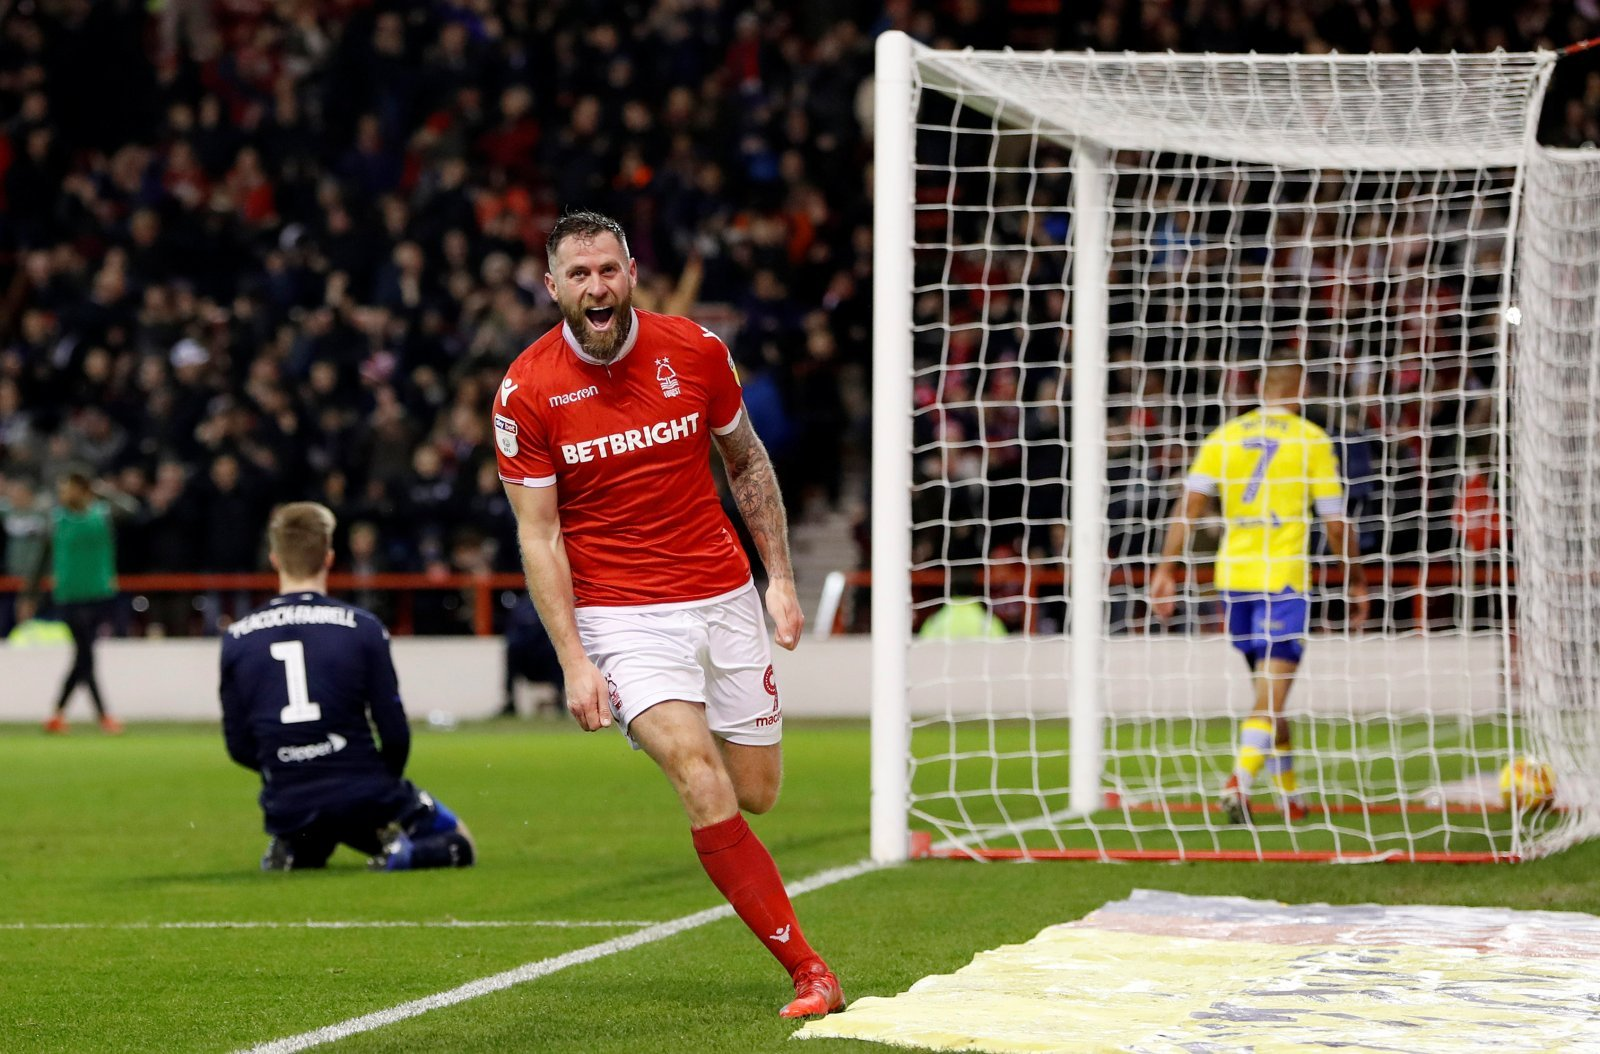 Nottingham Forest reach agreement that allows experienced figure to le